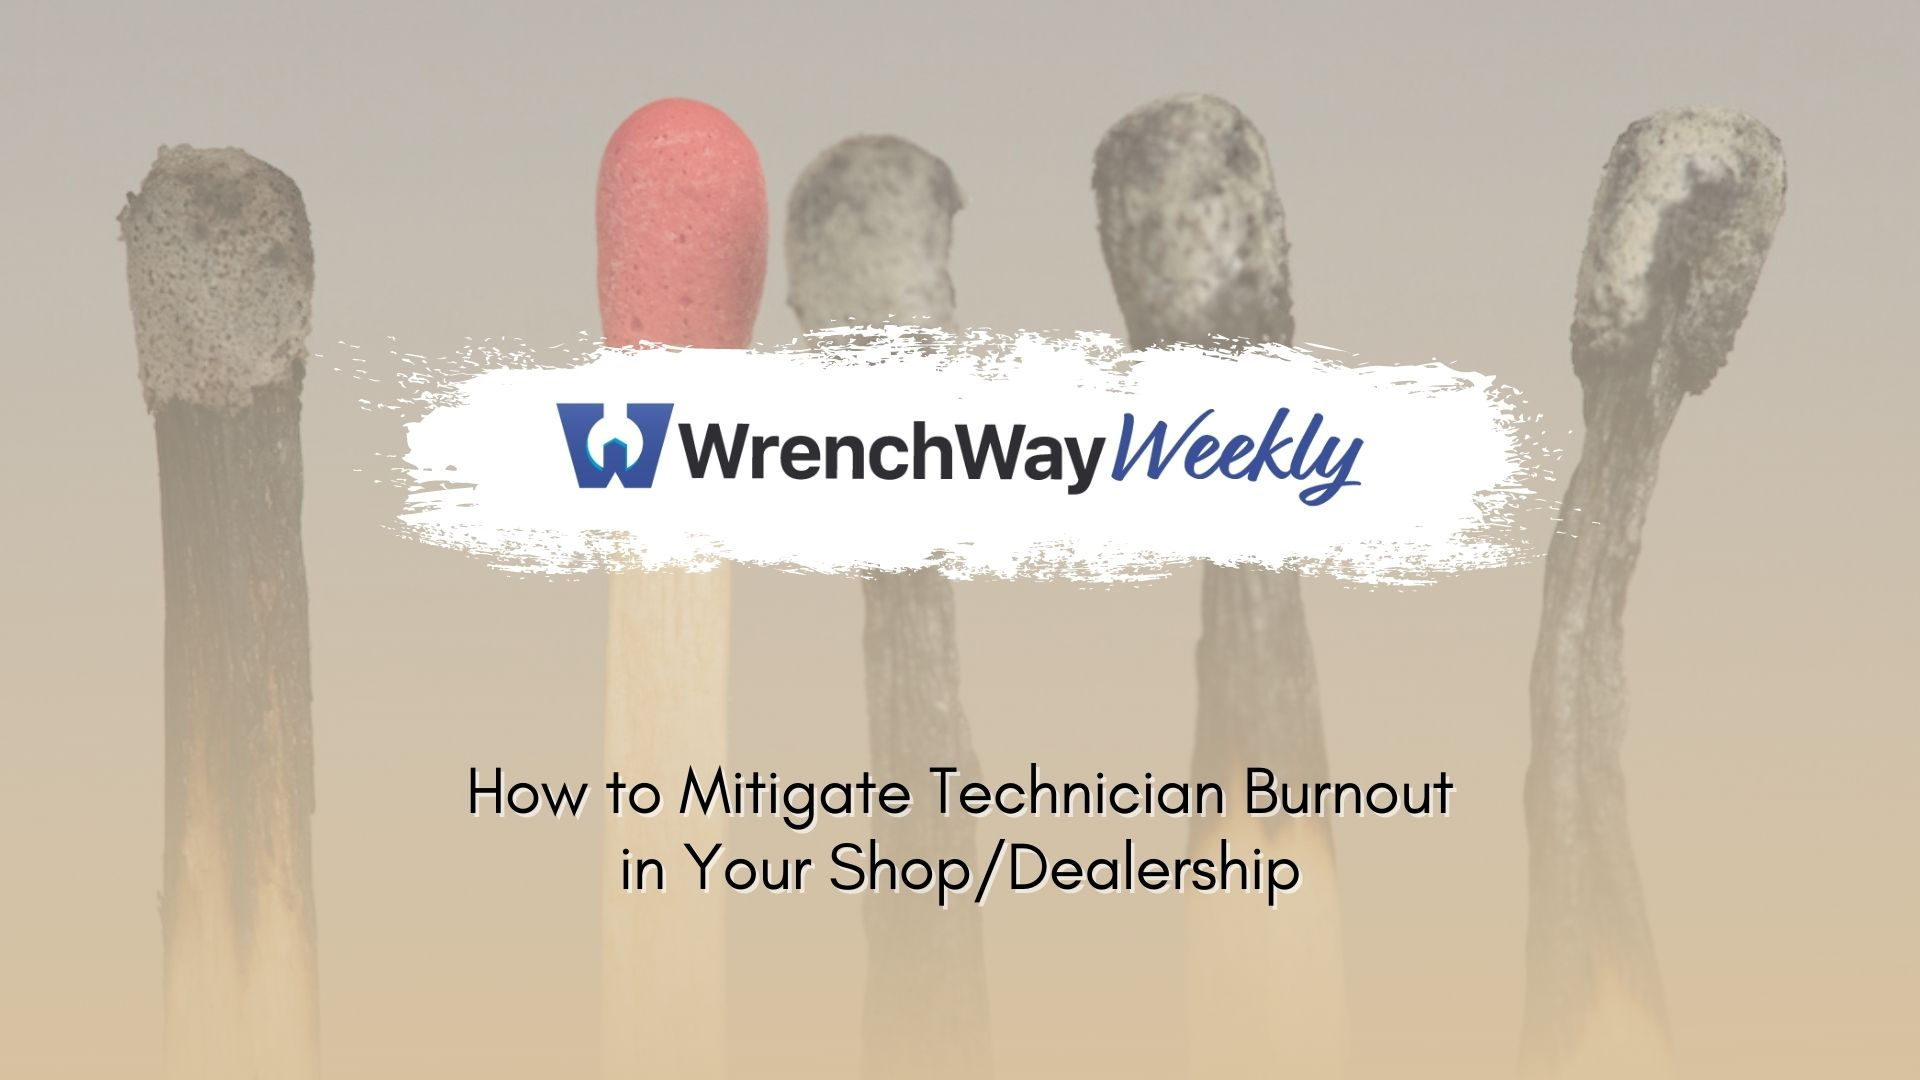 wrenchway weekly episode mitigating technician burnout